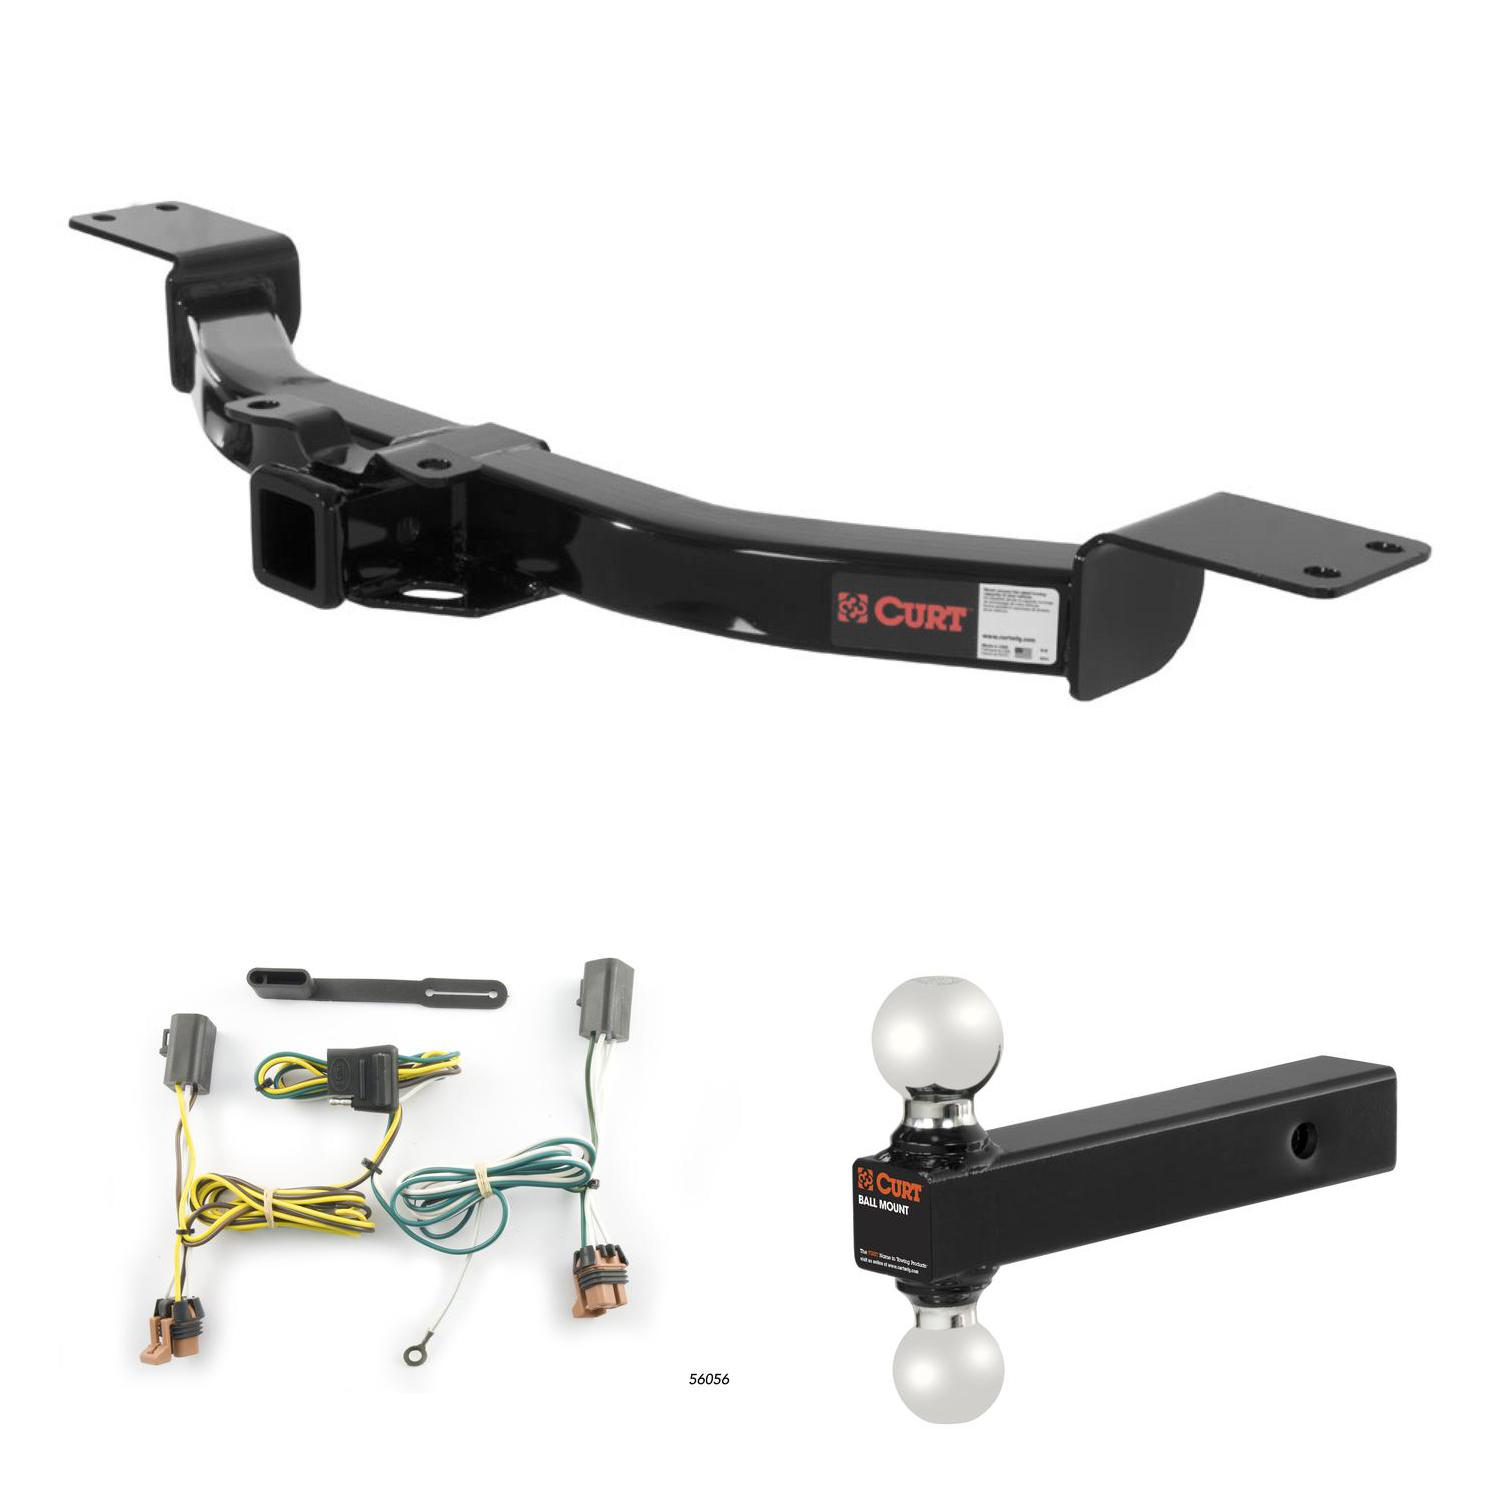 curt trailer hitch wiring multi ball ball mount for. Black Bedroom Furniture Sets. Home Design Ideas